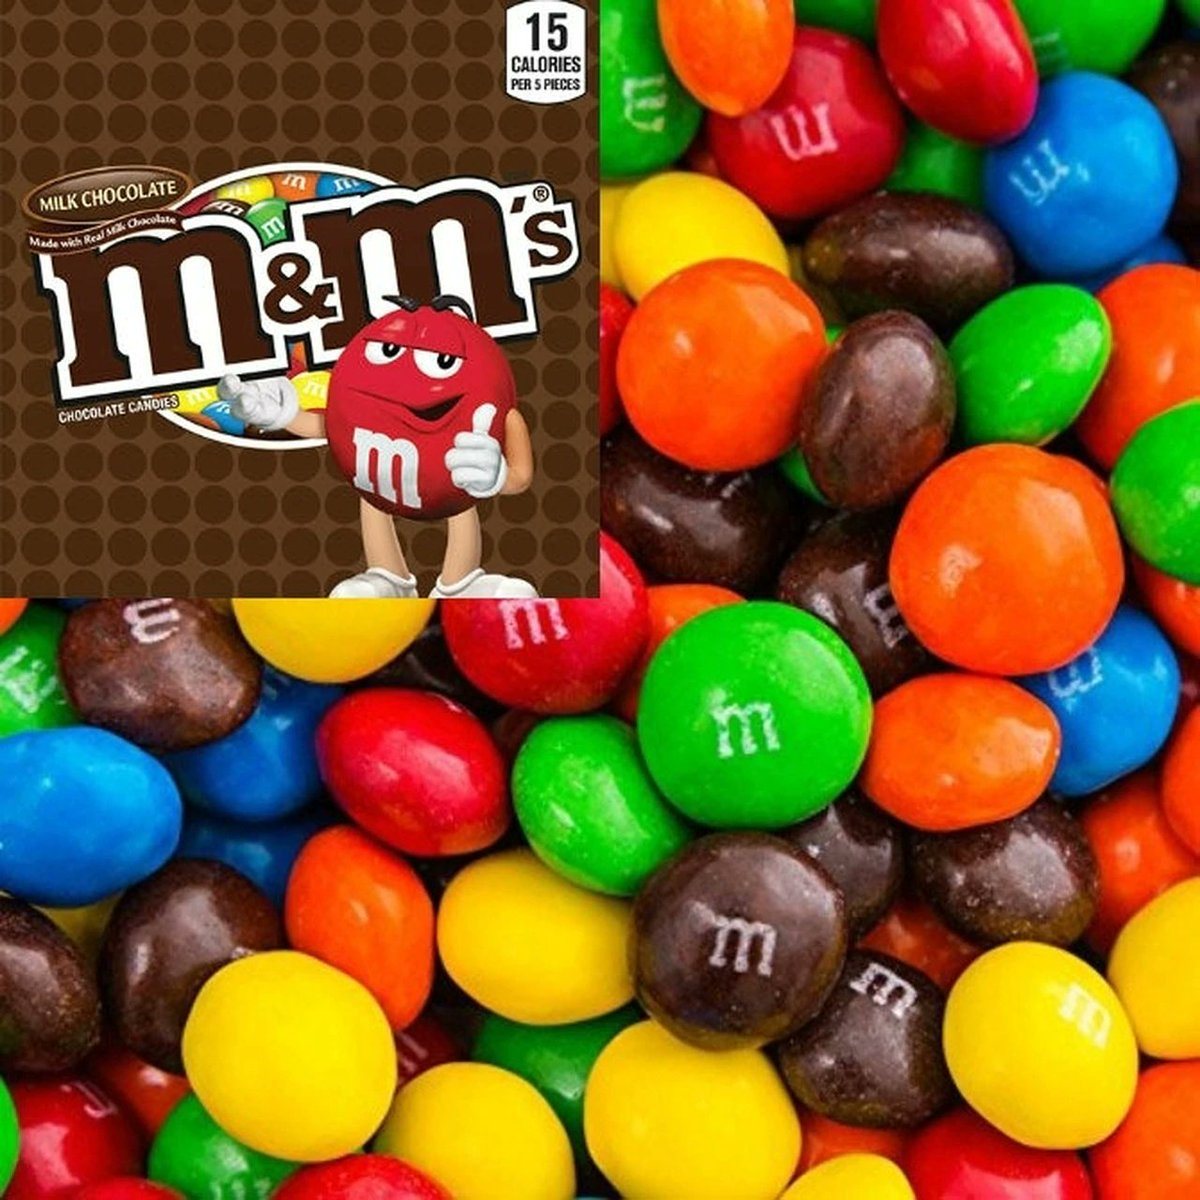 Try the Best M&M's Now! #m&mcandy #m&m #m&ms #candy #tasty #yumm #yummie #yummyyummy #chocolate #chocolove #enjoytime #havefun #have _a_good_day https://t.co/l8QS4f6EnV